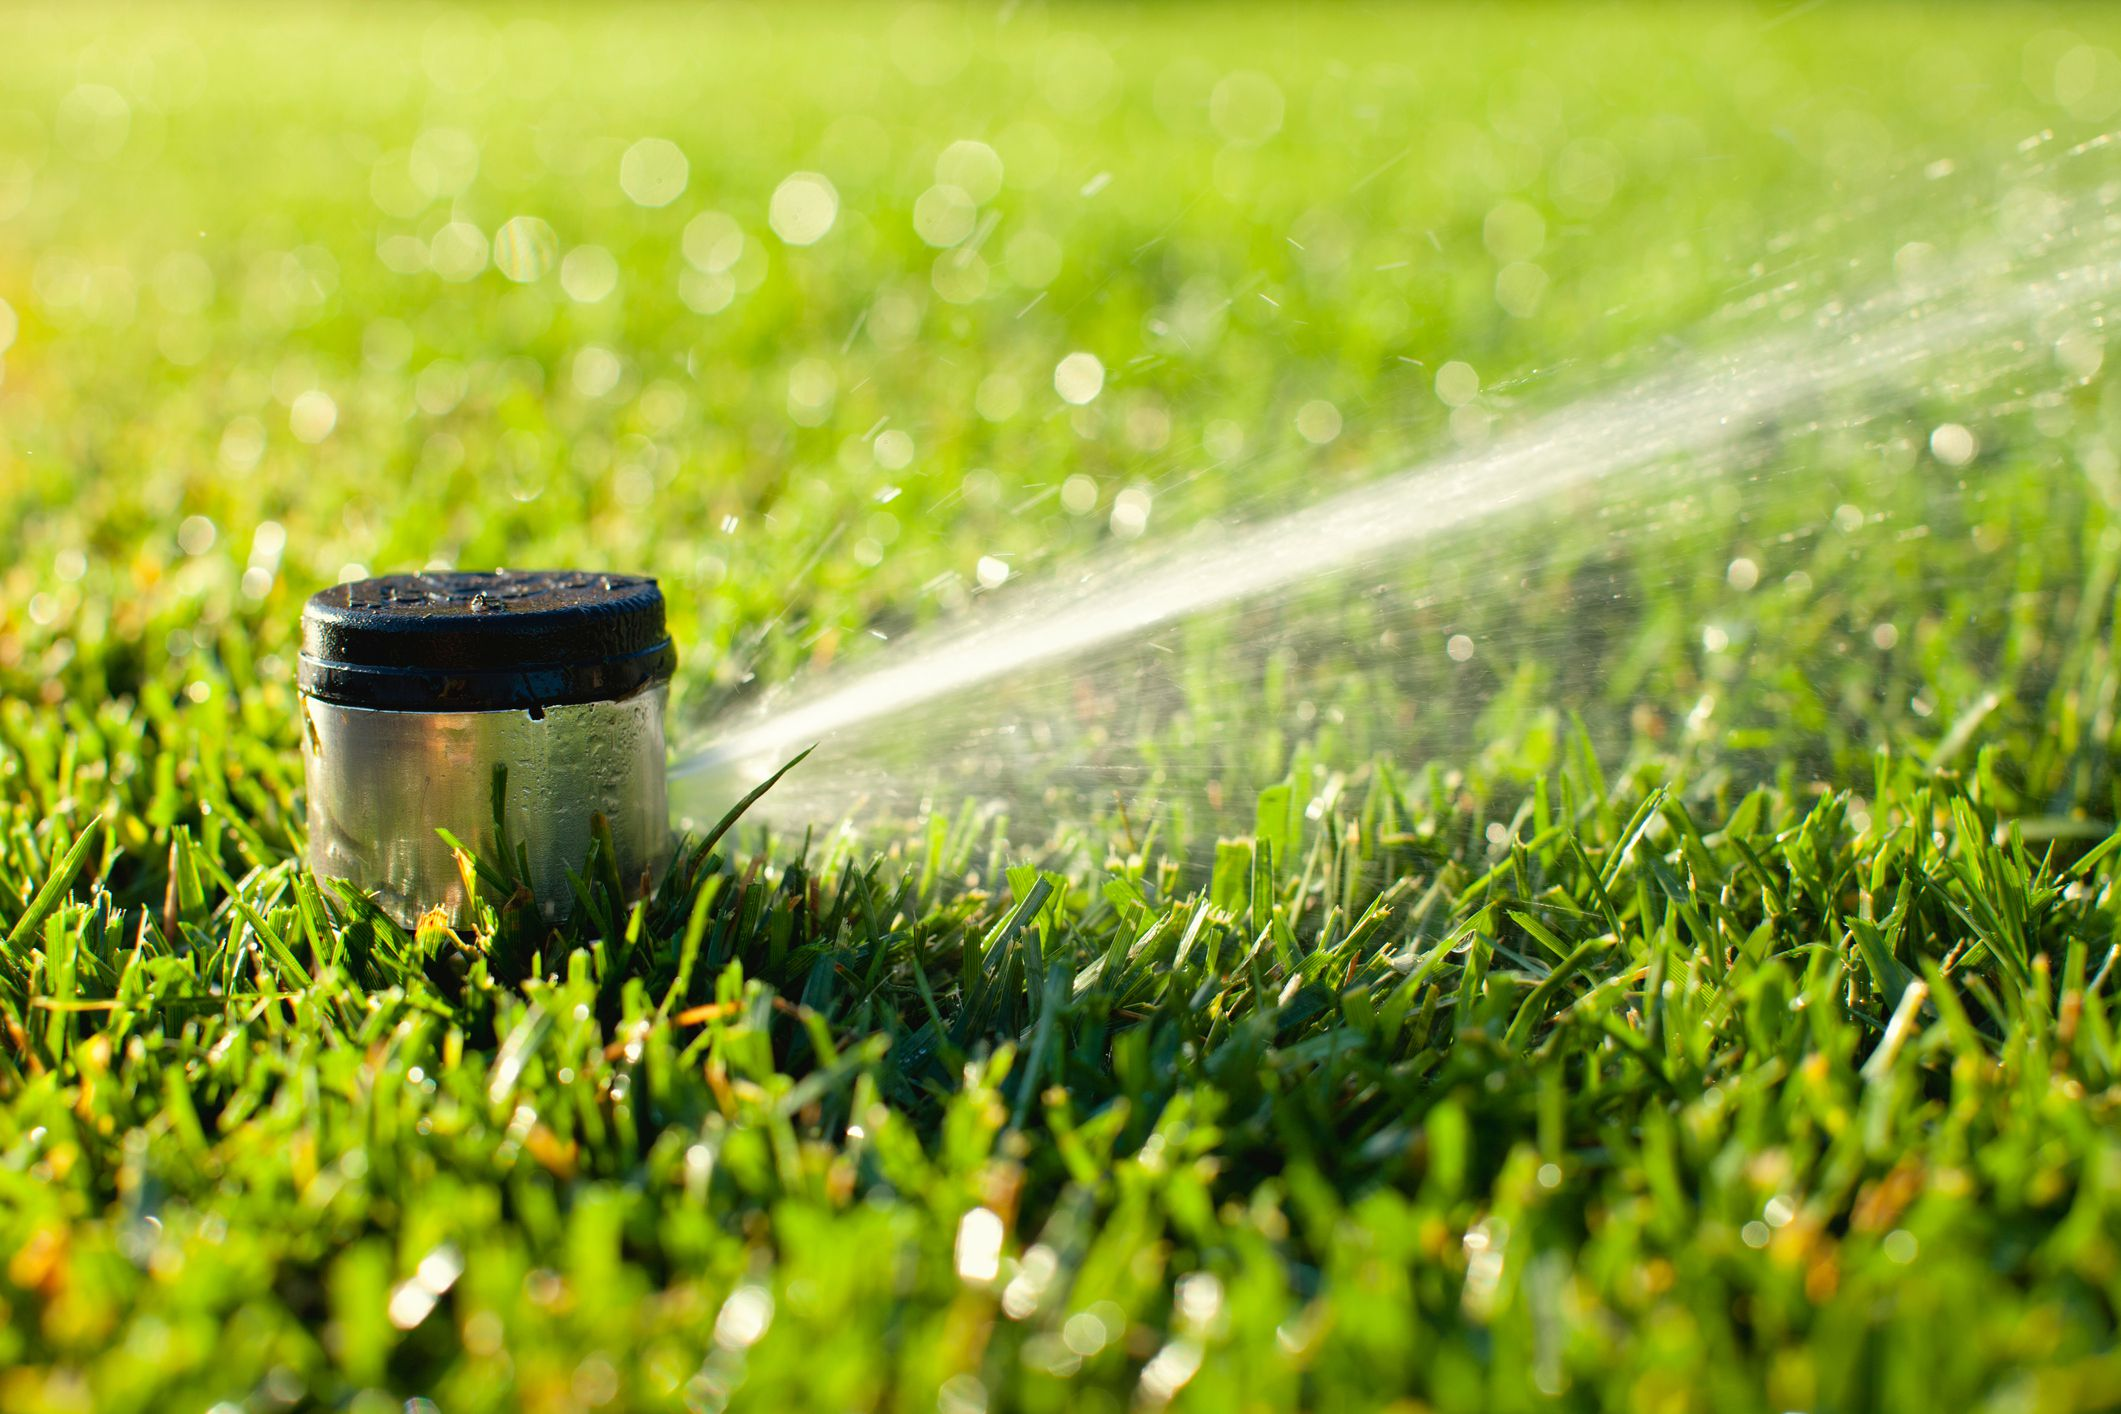 How To Replace A Lawn Irrigation Sprinkler Valve Mend Underground Electrical Wire Diy